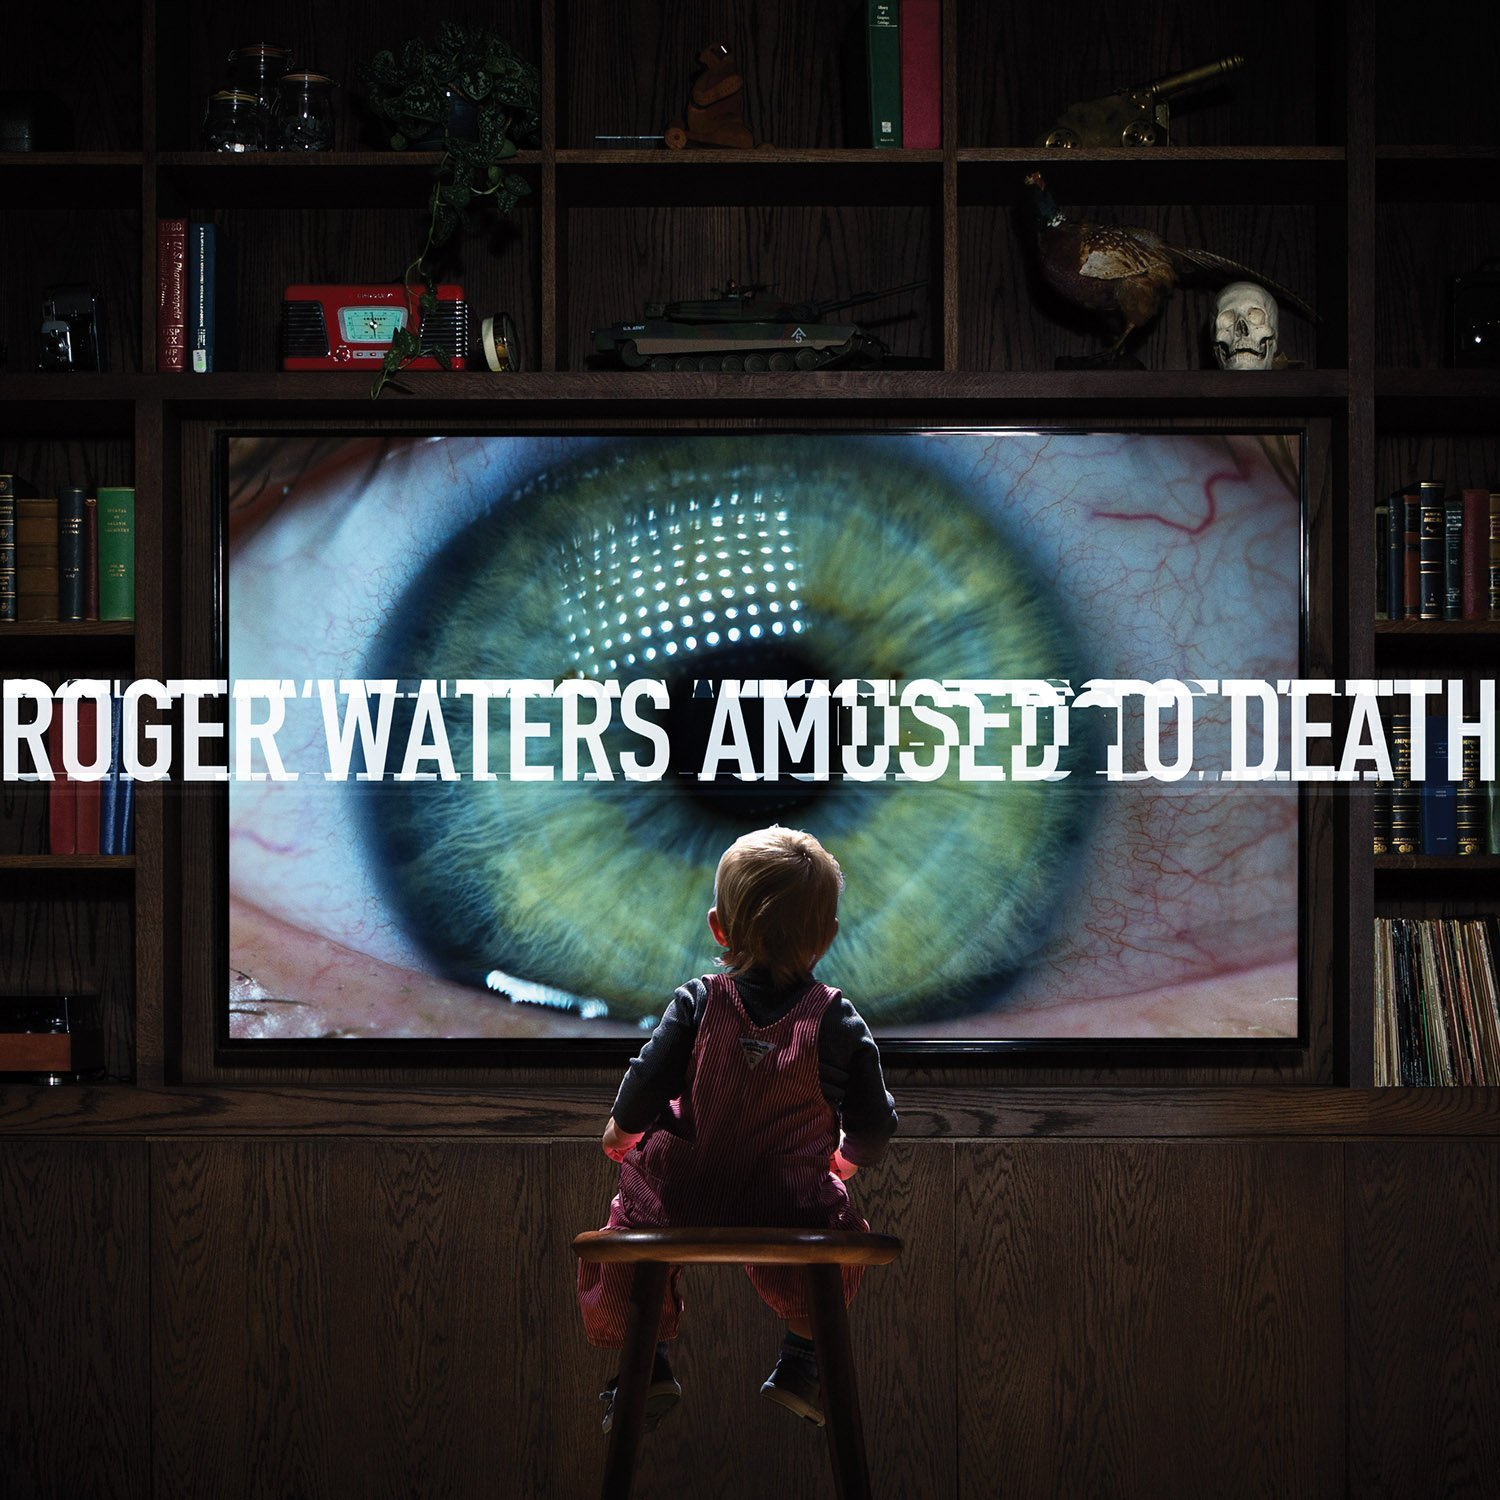 ROGER WATERS' PORTRAIT OF A DISTRACTED SOCIETY, AMUSED TO DEATH, CELEBRATED WITH REMASTERED RELEASE